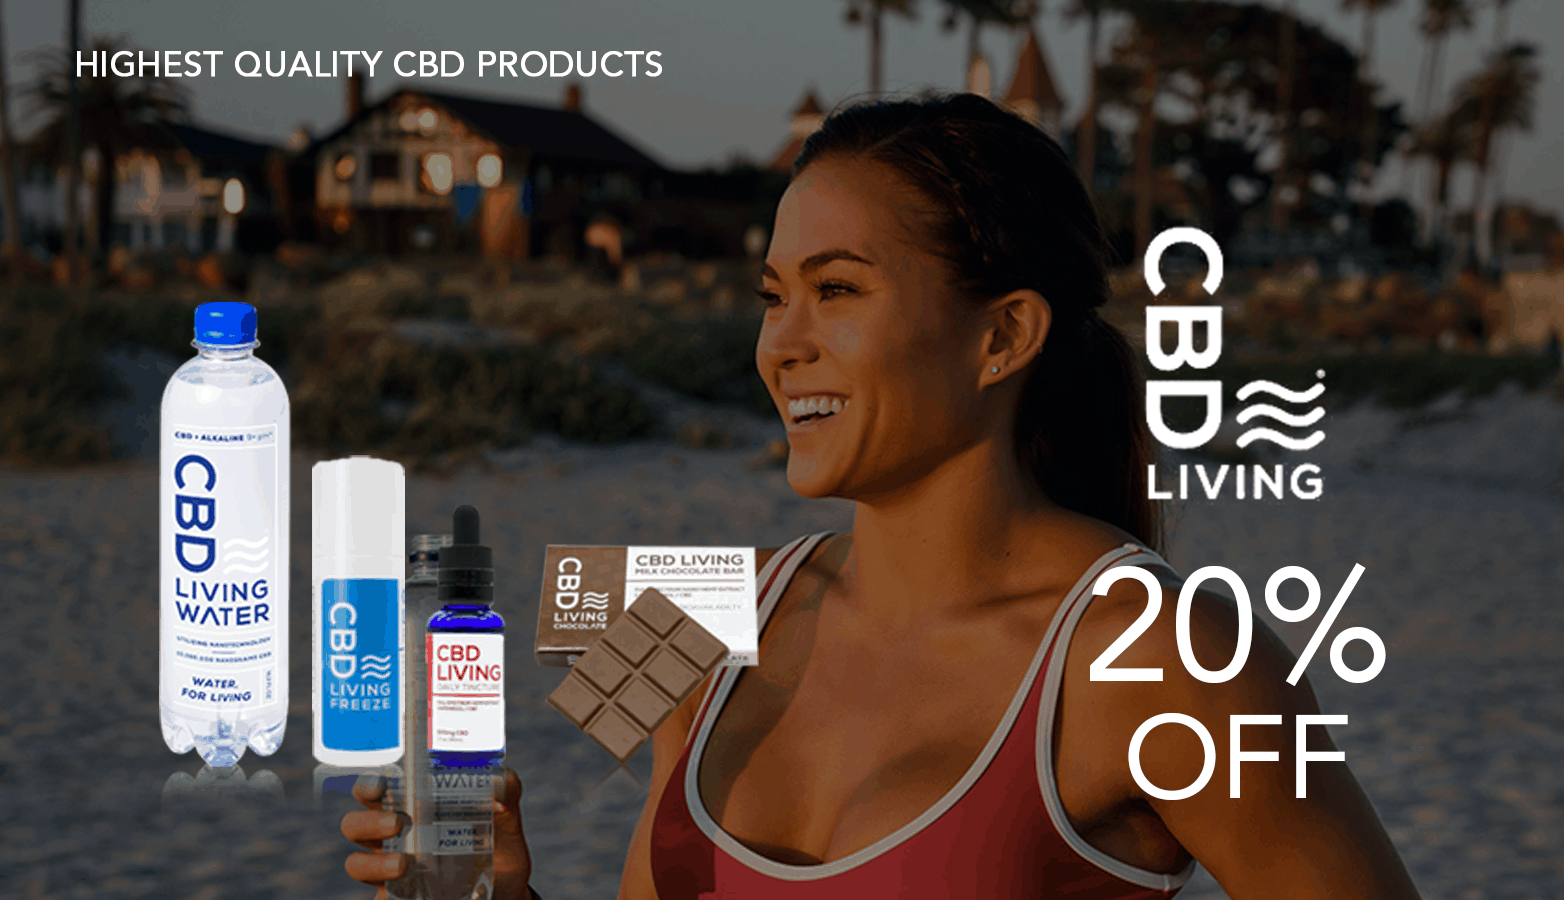 Save with CBD Living coupon codes now!